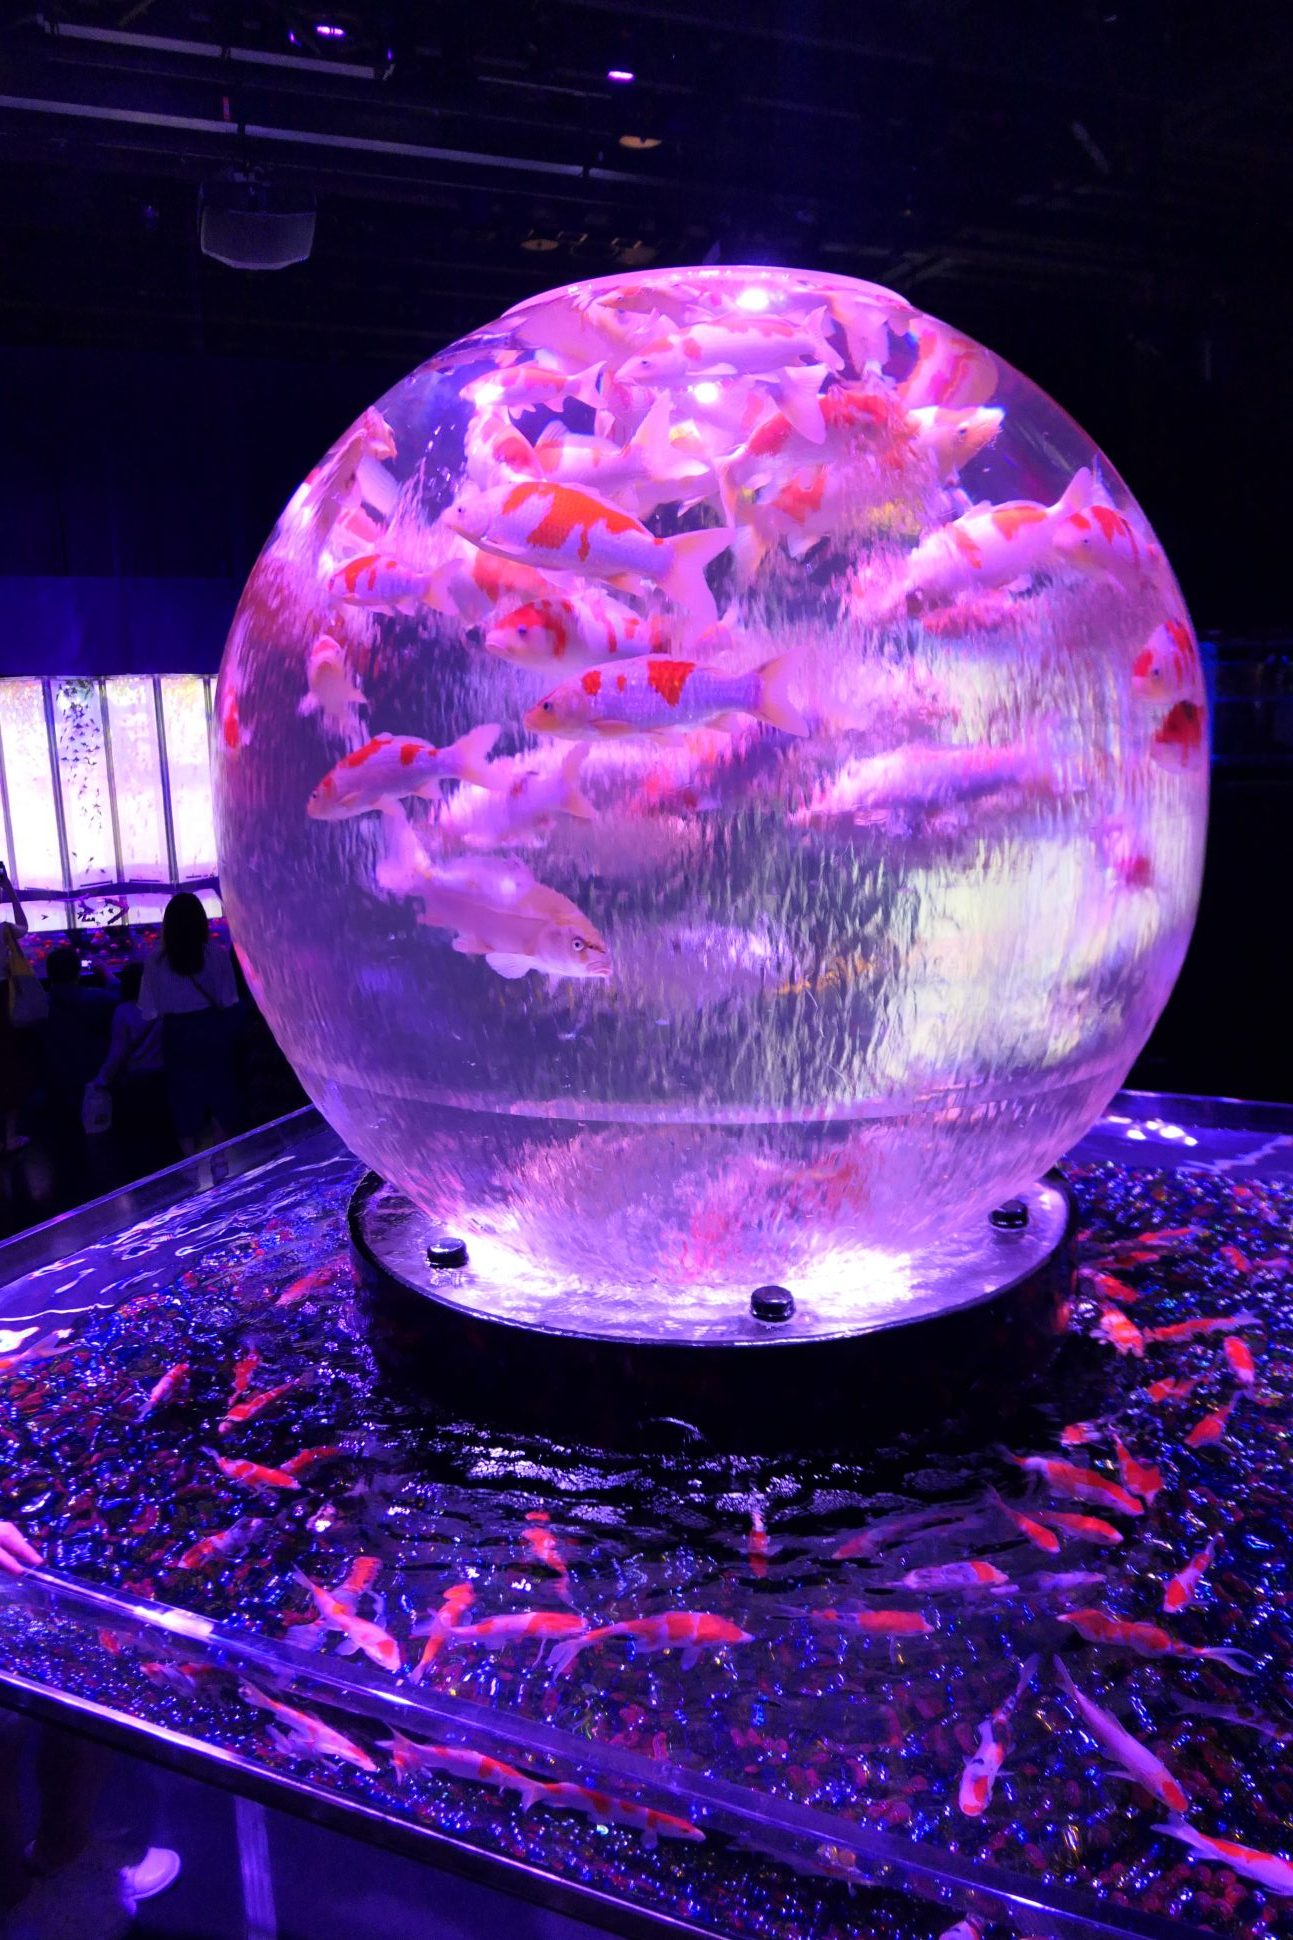 Summer in Japan - Art Aquarium